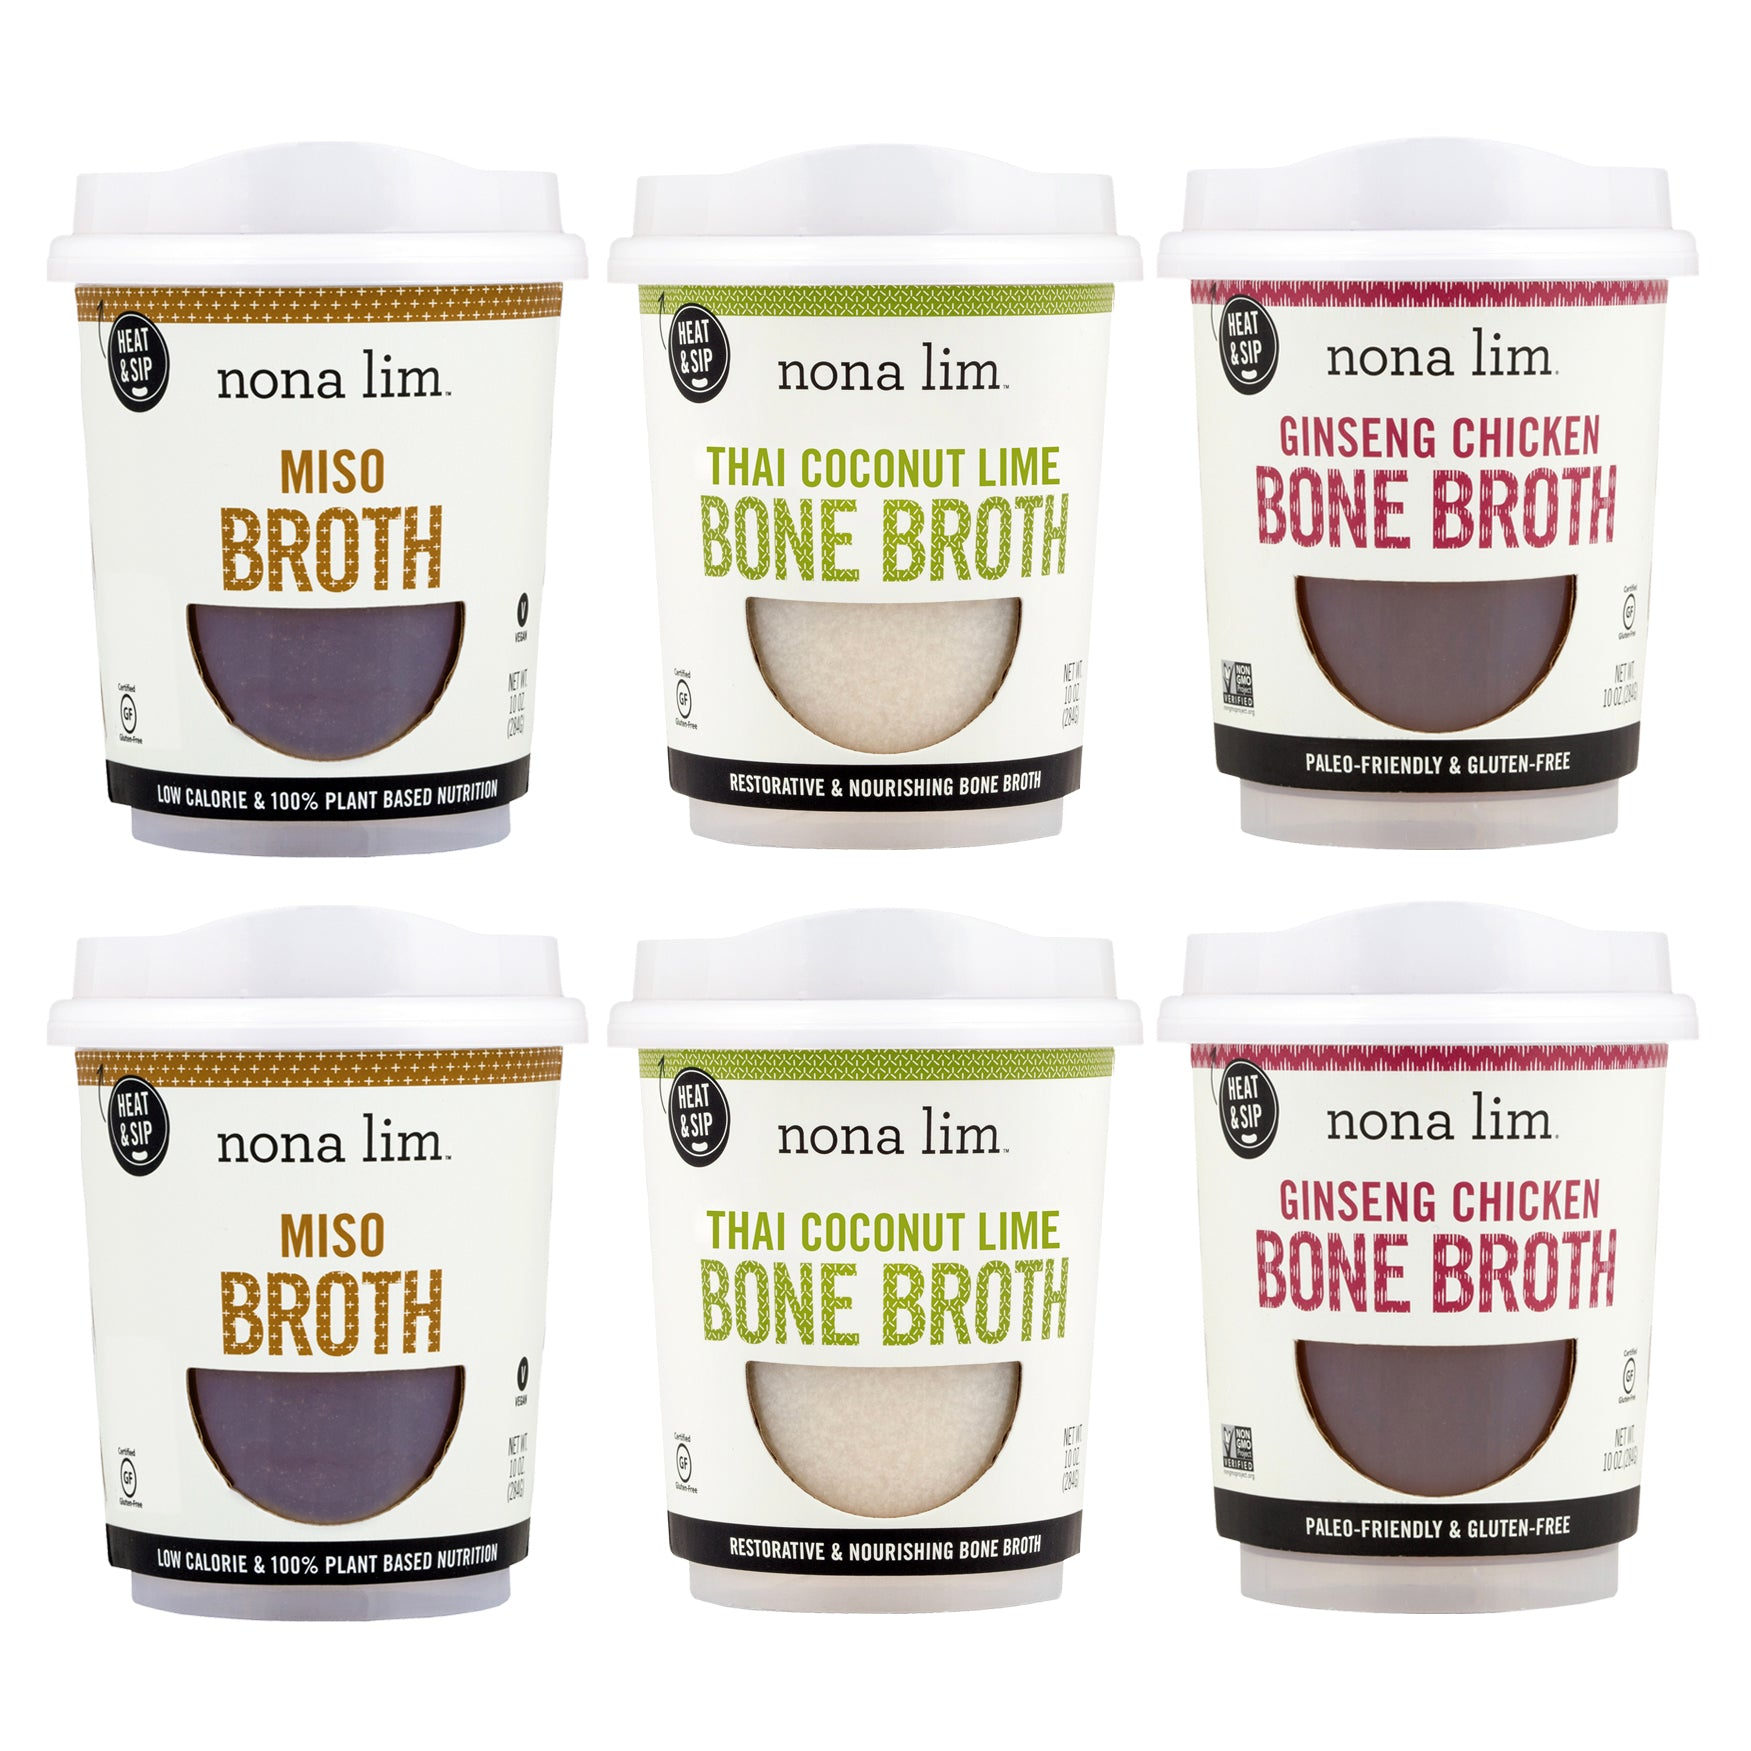 Nona Lim Better Soon Cold & Flu Care Kit Miso Broth, Thai Coconut Lime Broth, Ginseng Chicken Bone Broth Heat and Sip Soup Cups. Gluten free and Dairy free.